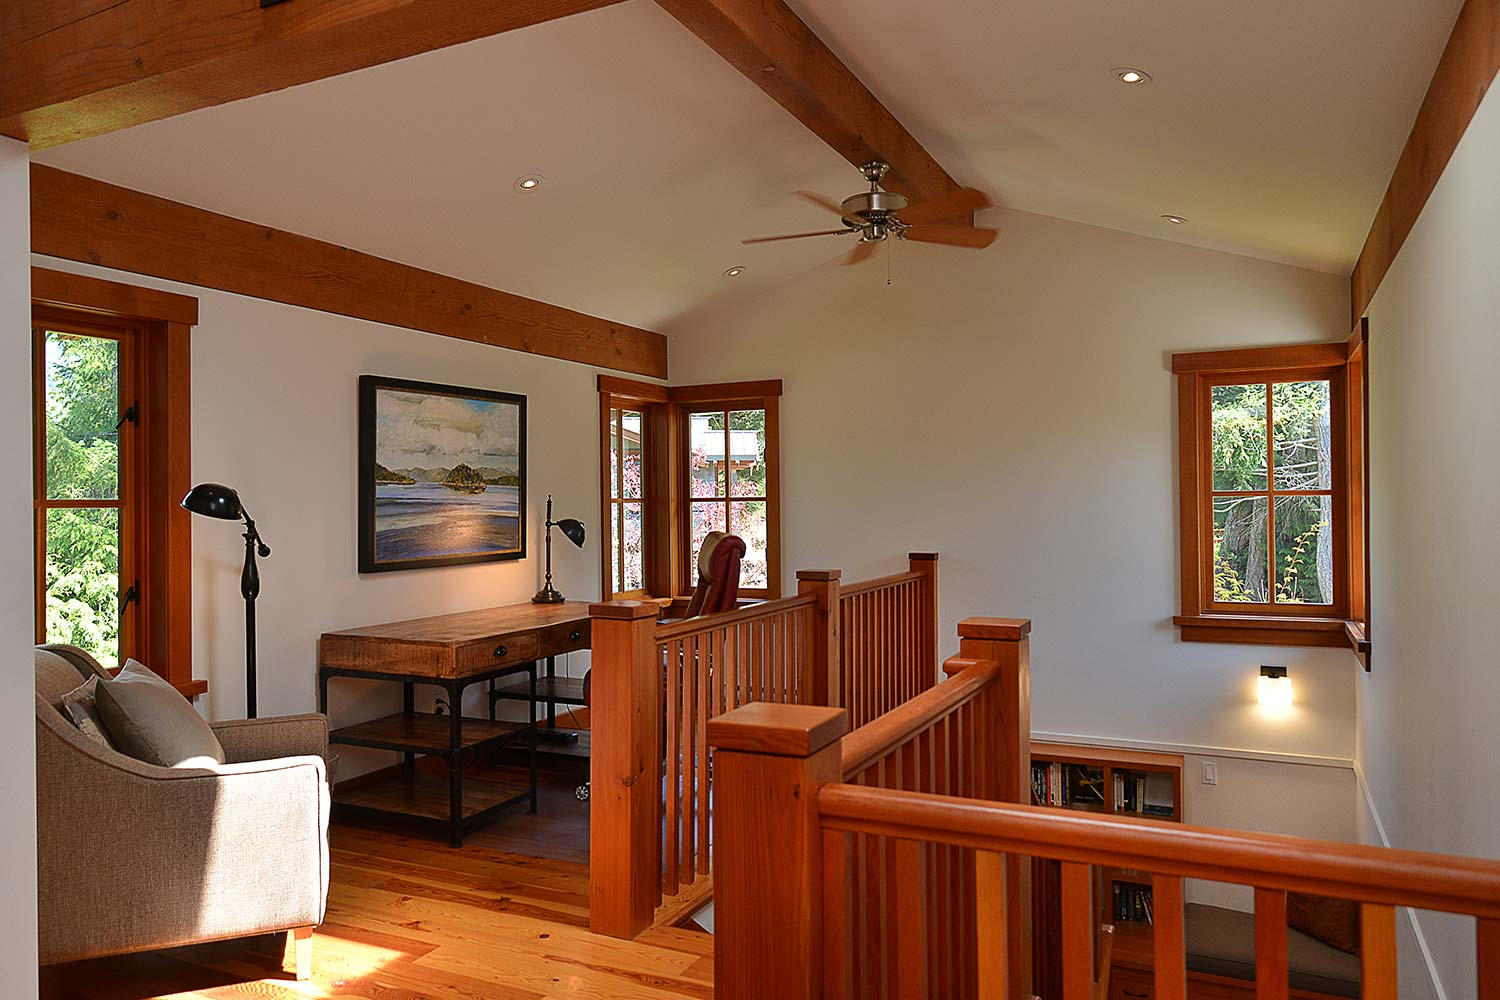 The upstairs office area in House 65 at John Henry's Resort and Marina has a large desk and artwork above it.